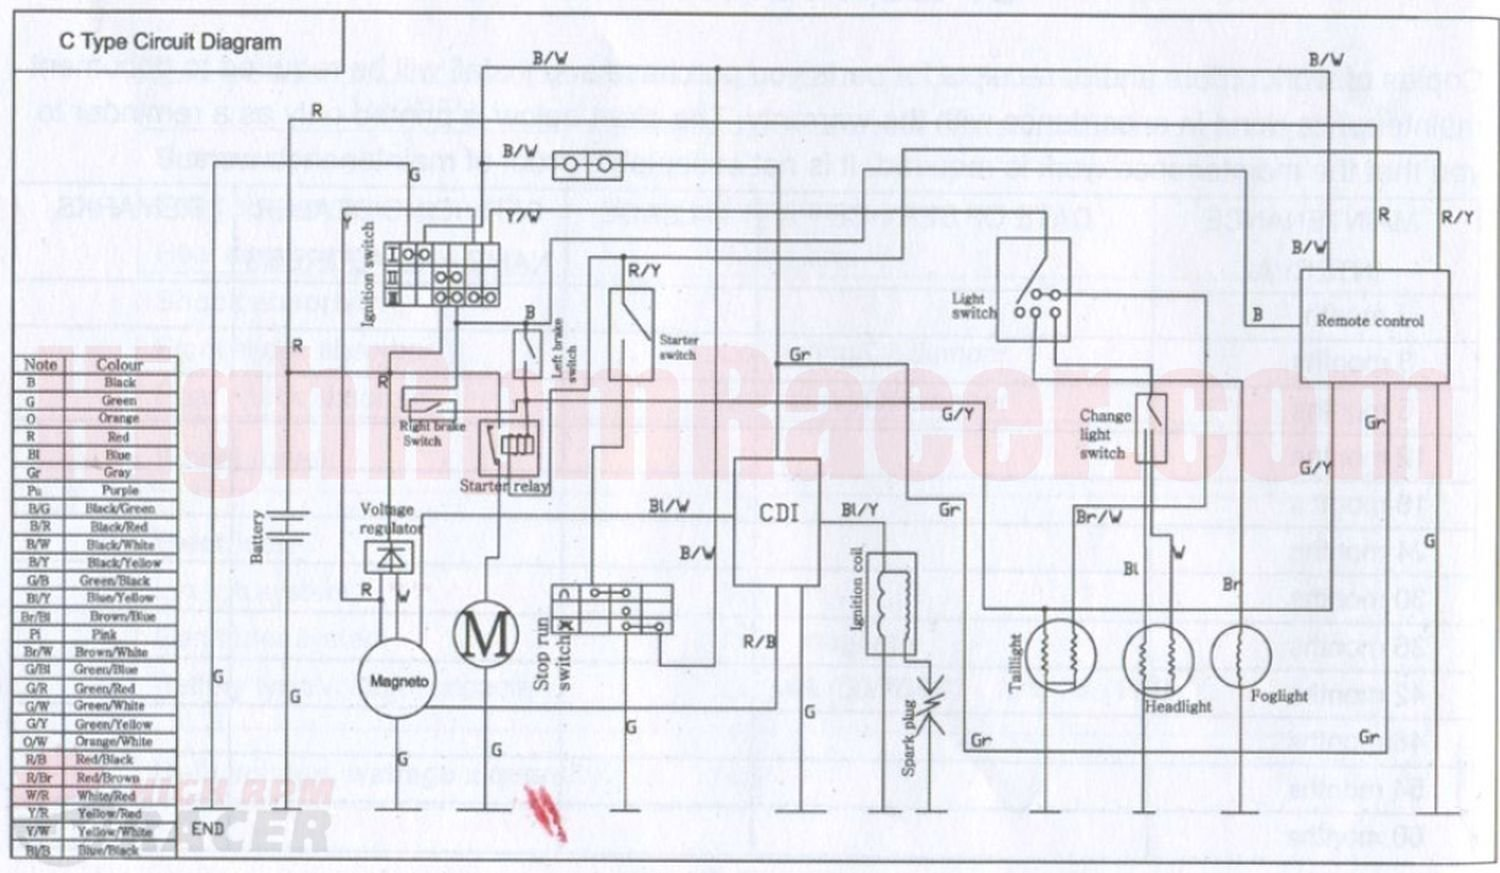 buyang50c_wd buyang atv 50 wiring diagram $0 00 roketa 50cc atv wiring diagram at aneh.co